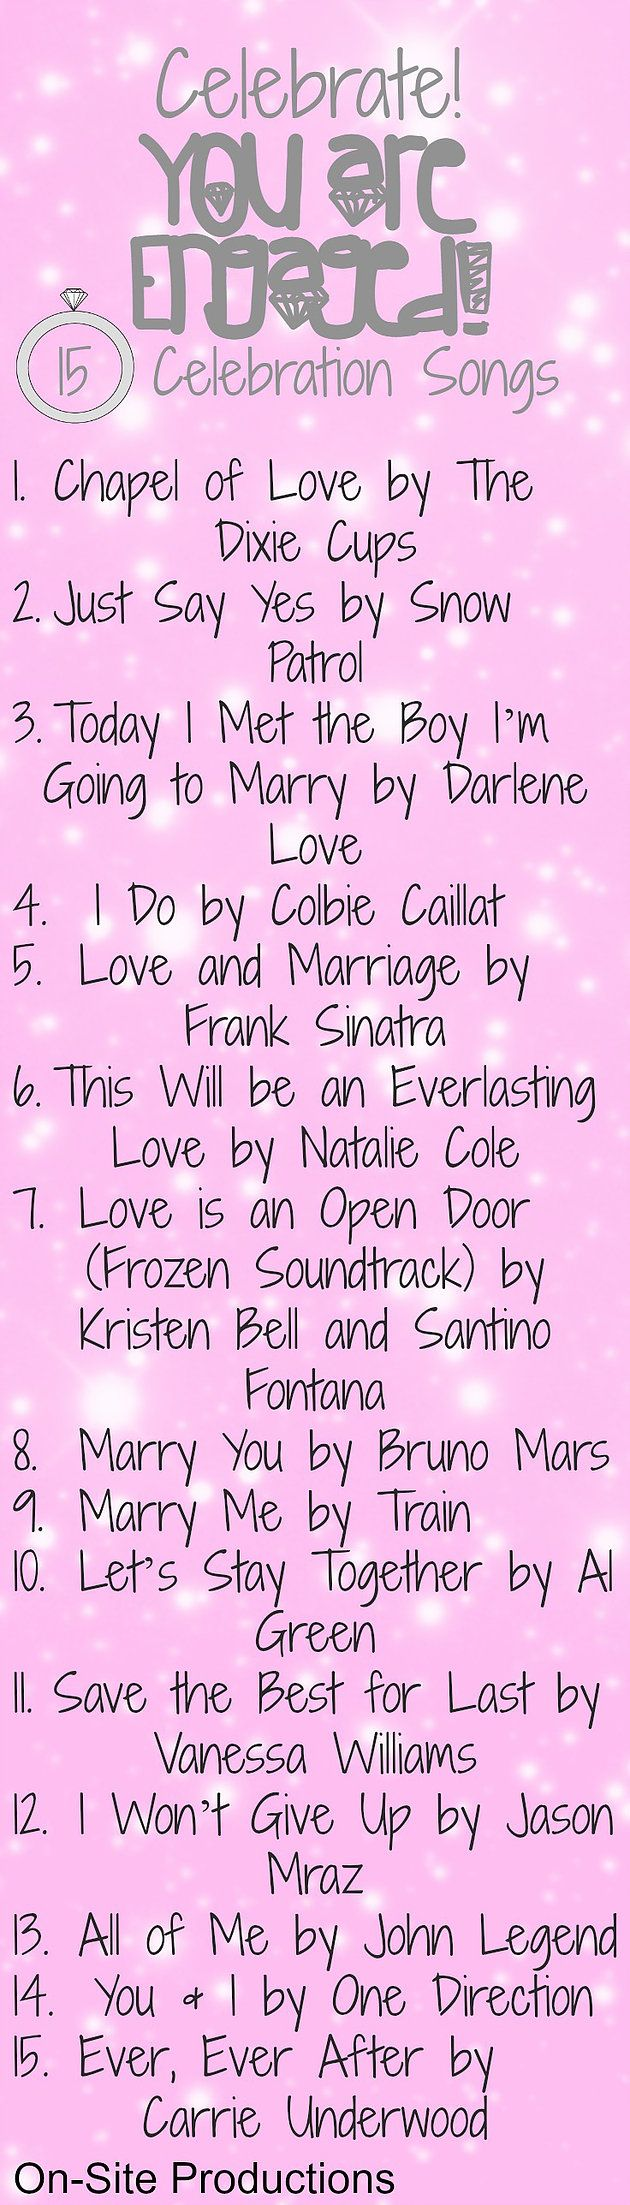 The perfect playlist to get you super excited about your engagement!  This makes me want to start those wedding plans!